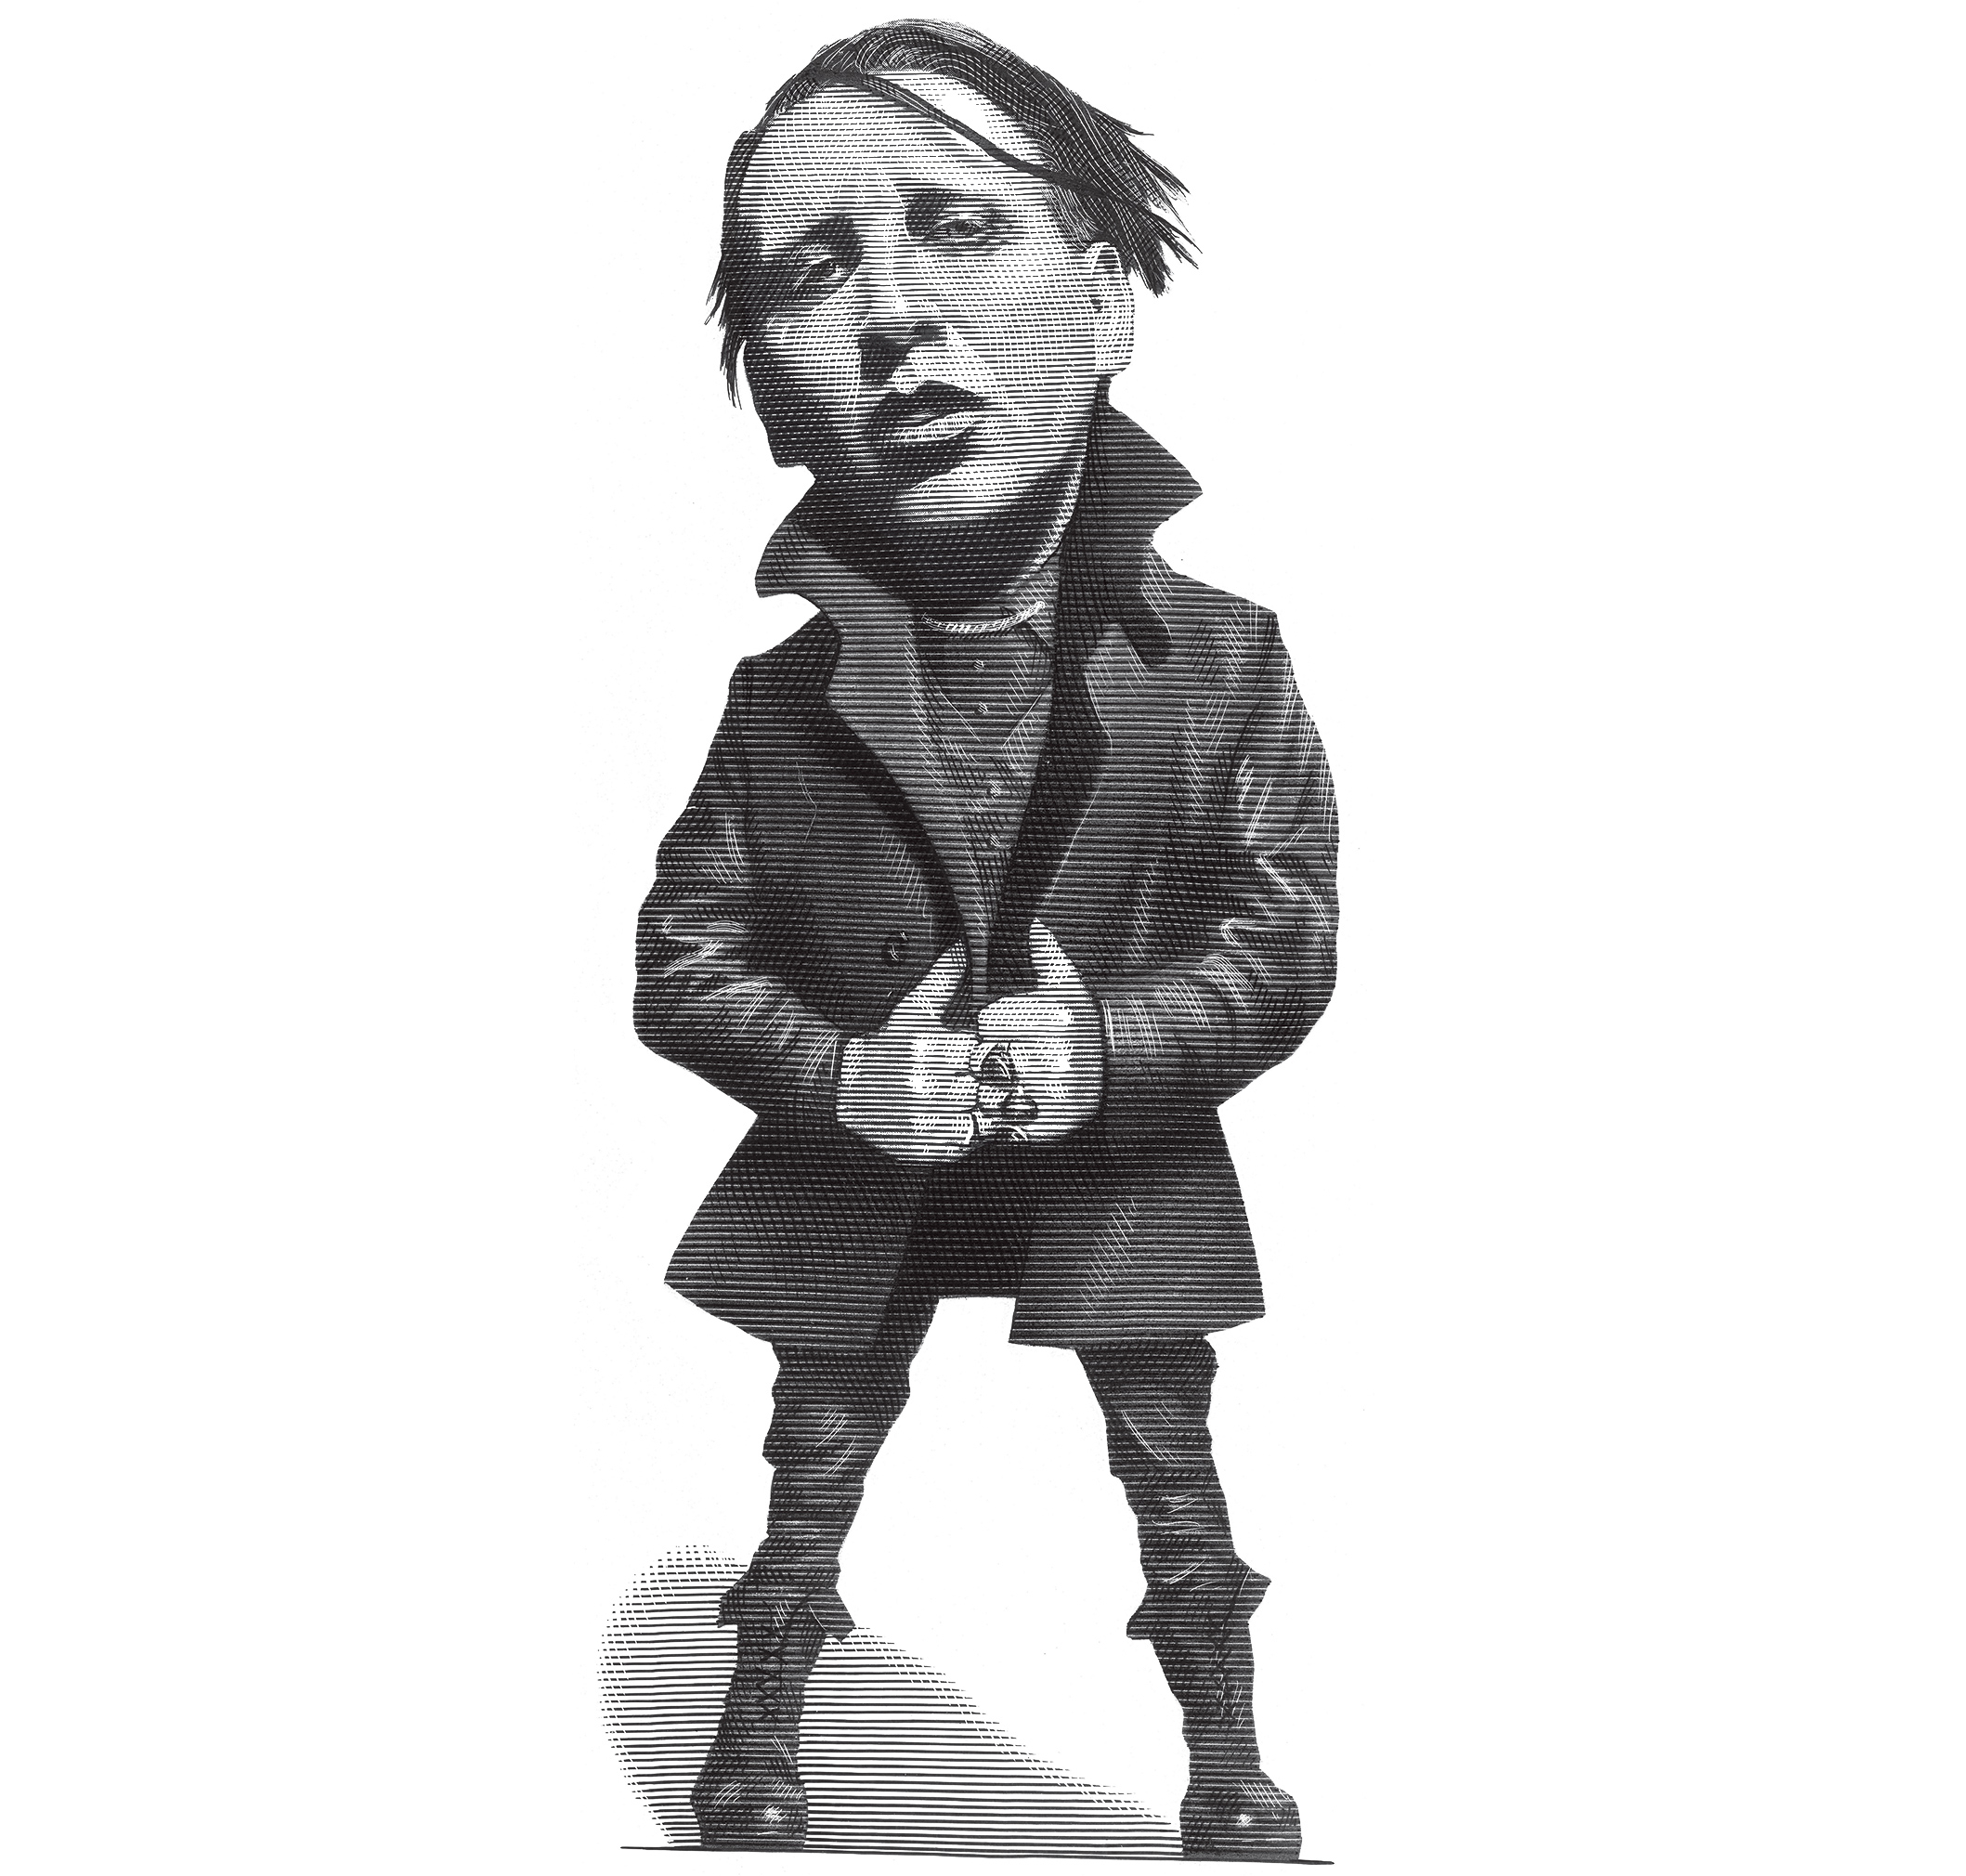 Marilyn Manson On Bowie Drugs And Losing His Virginity